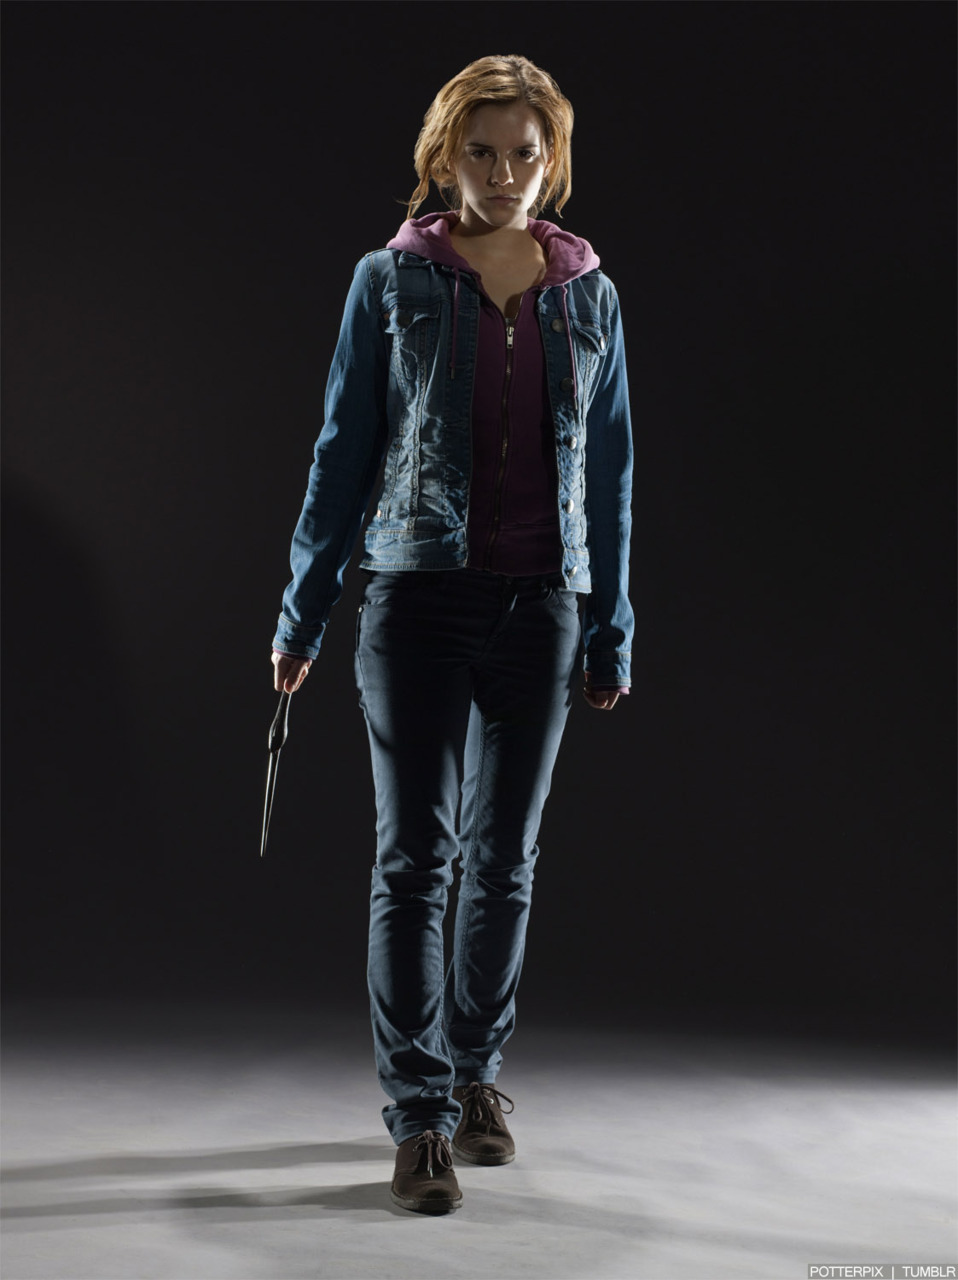 New Deathly Hallows Part 2 Promo